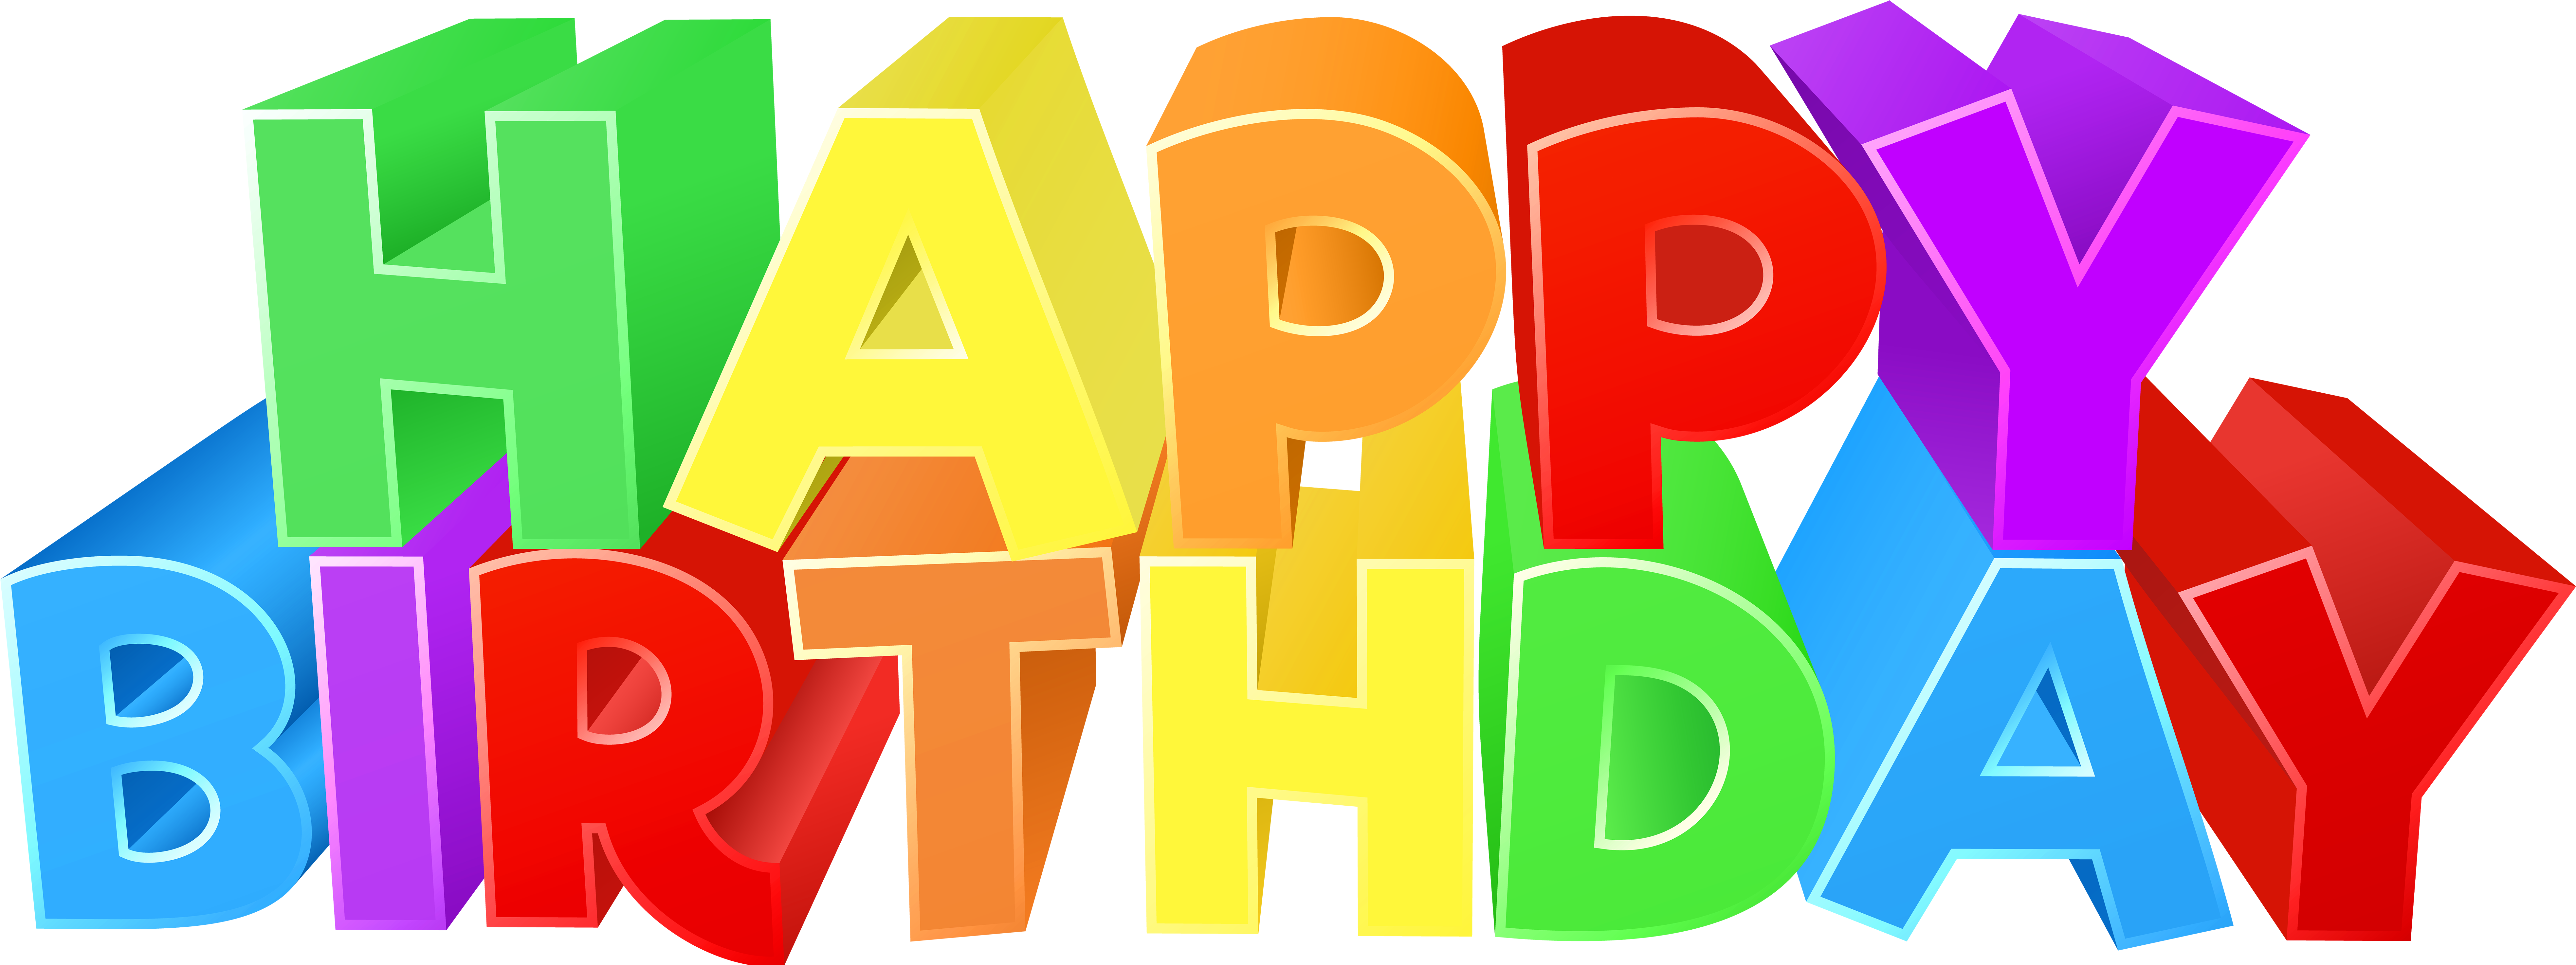 Birthday Colorful Png Clip Art Image Gallery.